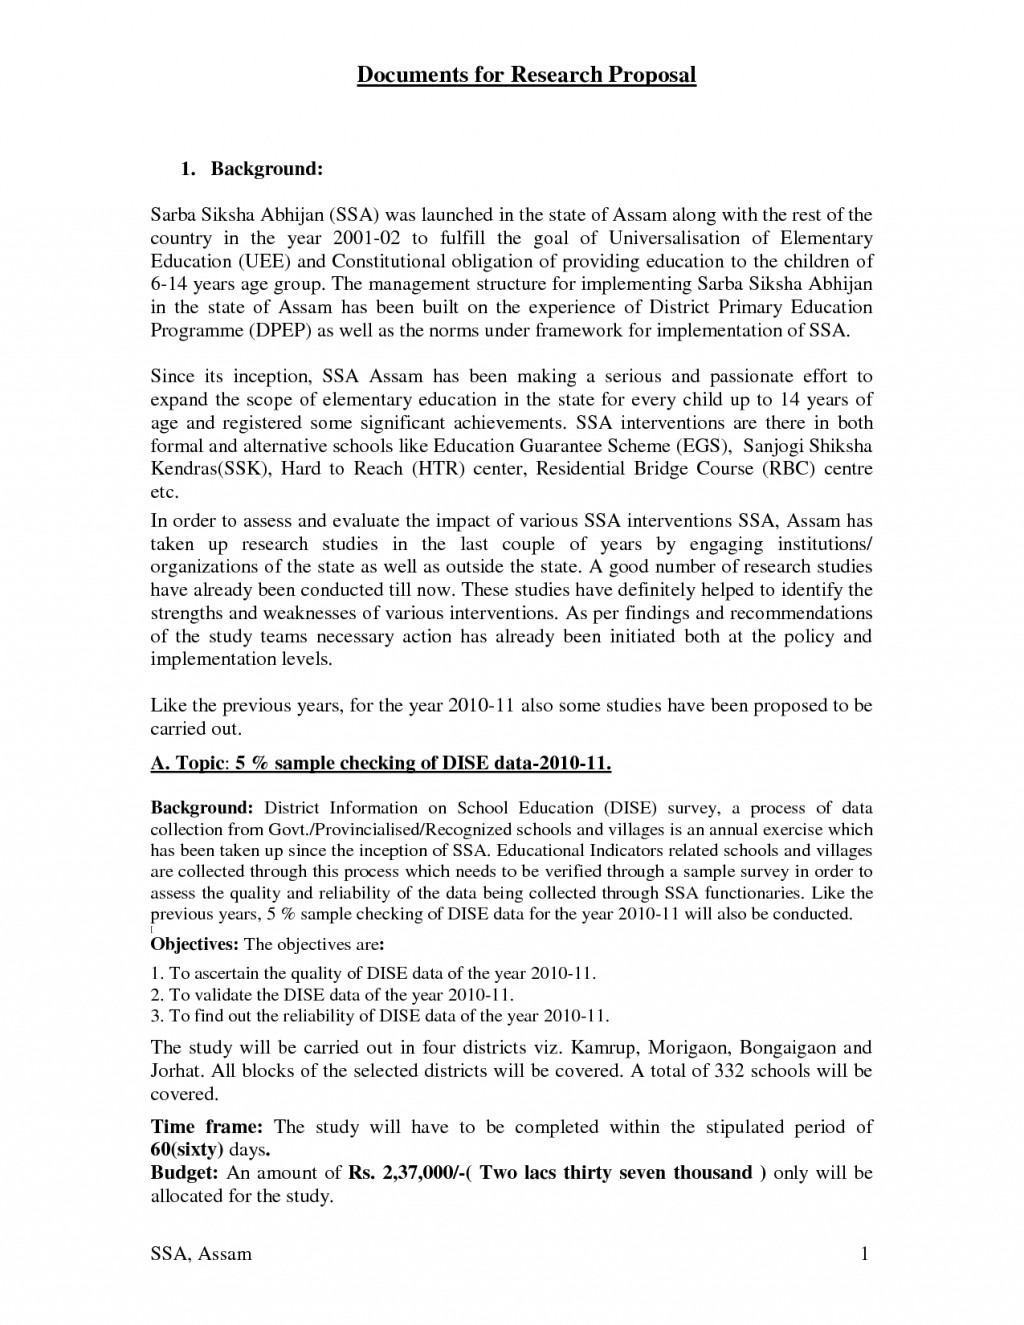 006 Research Topic Proposal Sample 501313 Example Wonderful Paper Template Write 5 Of A Large